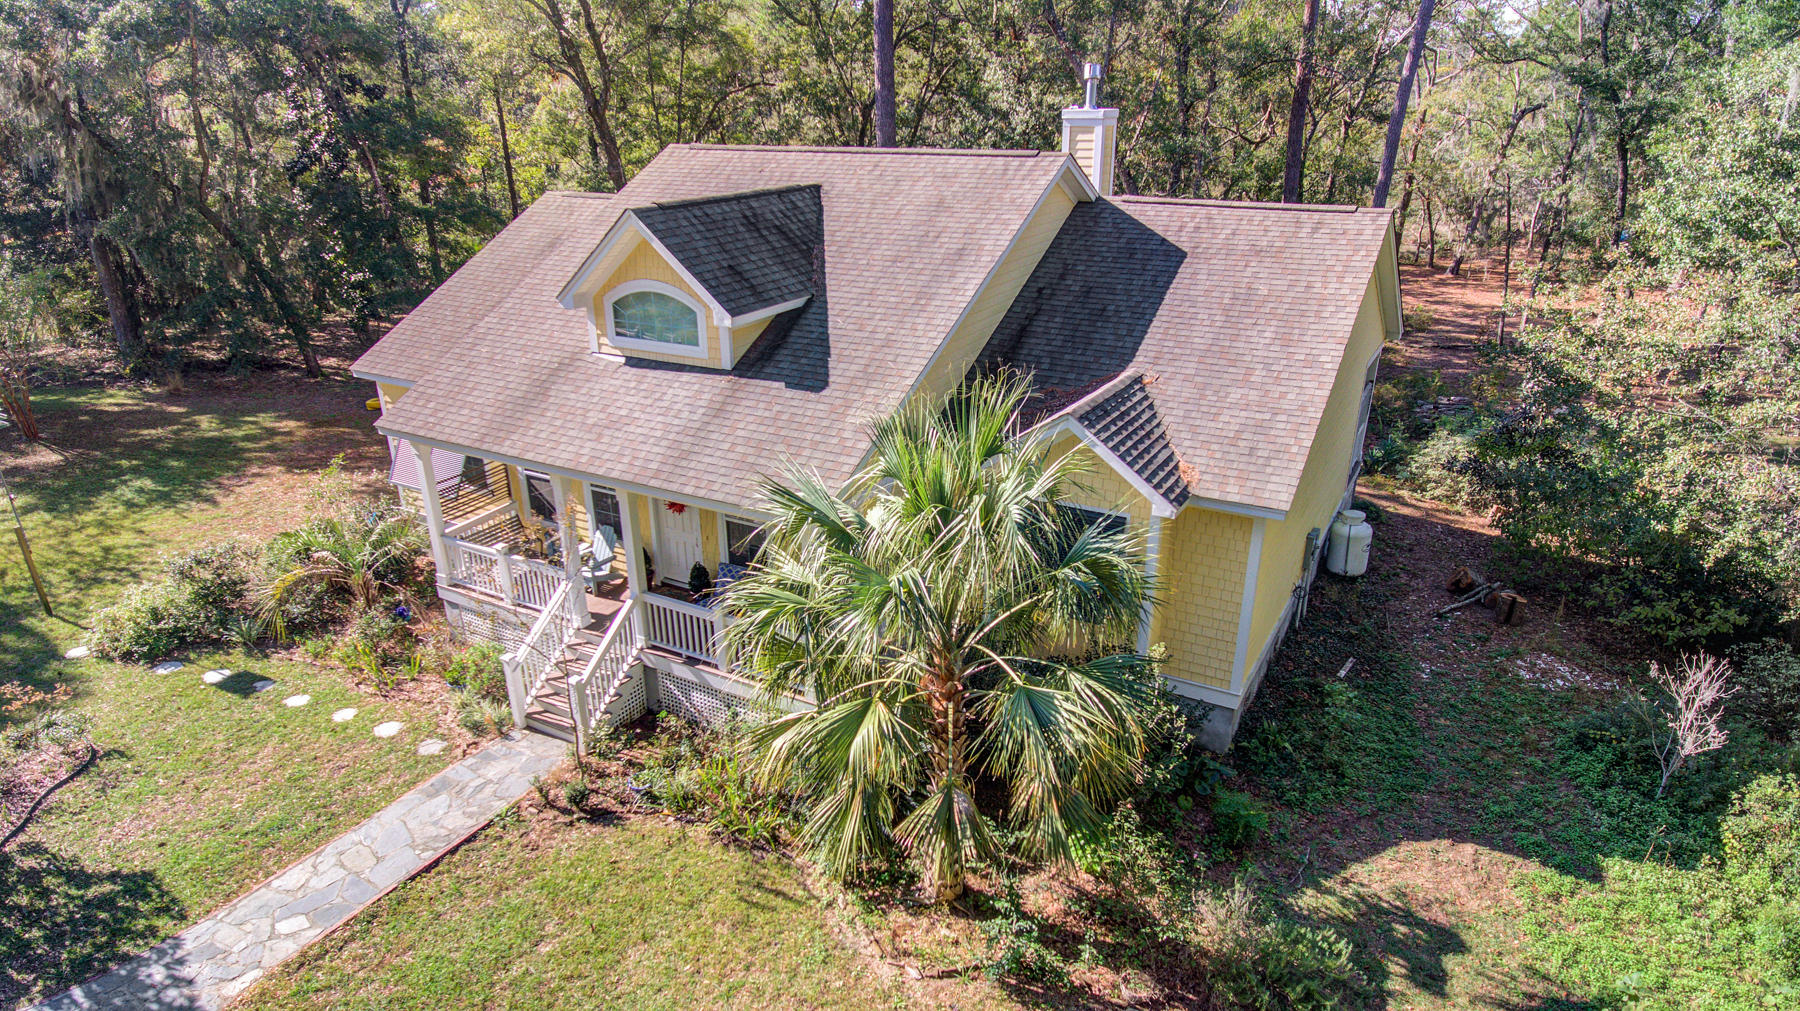 Hickory Hill Estates Homes For Sale - 3339 Hickory Hill, Johns Island, SC - 10